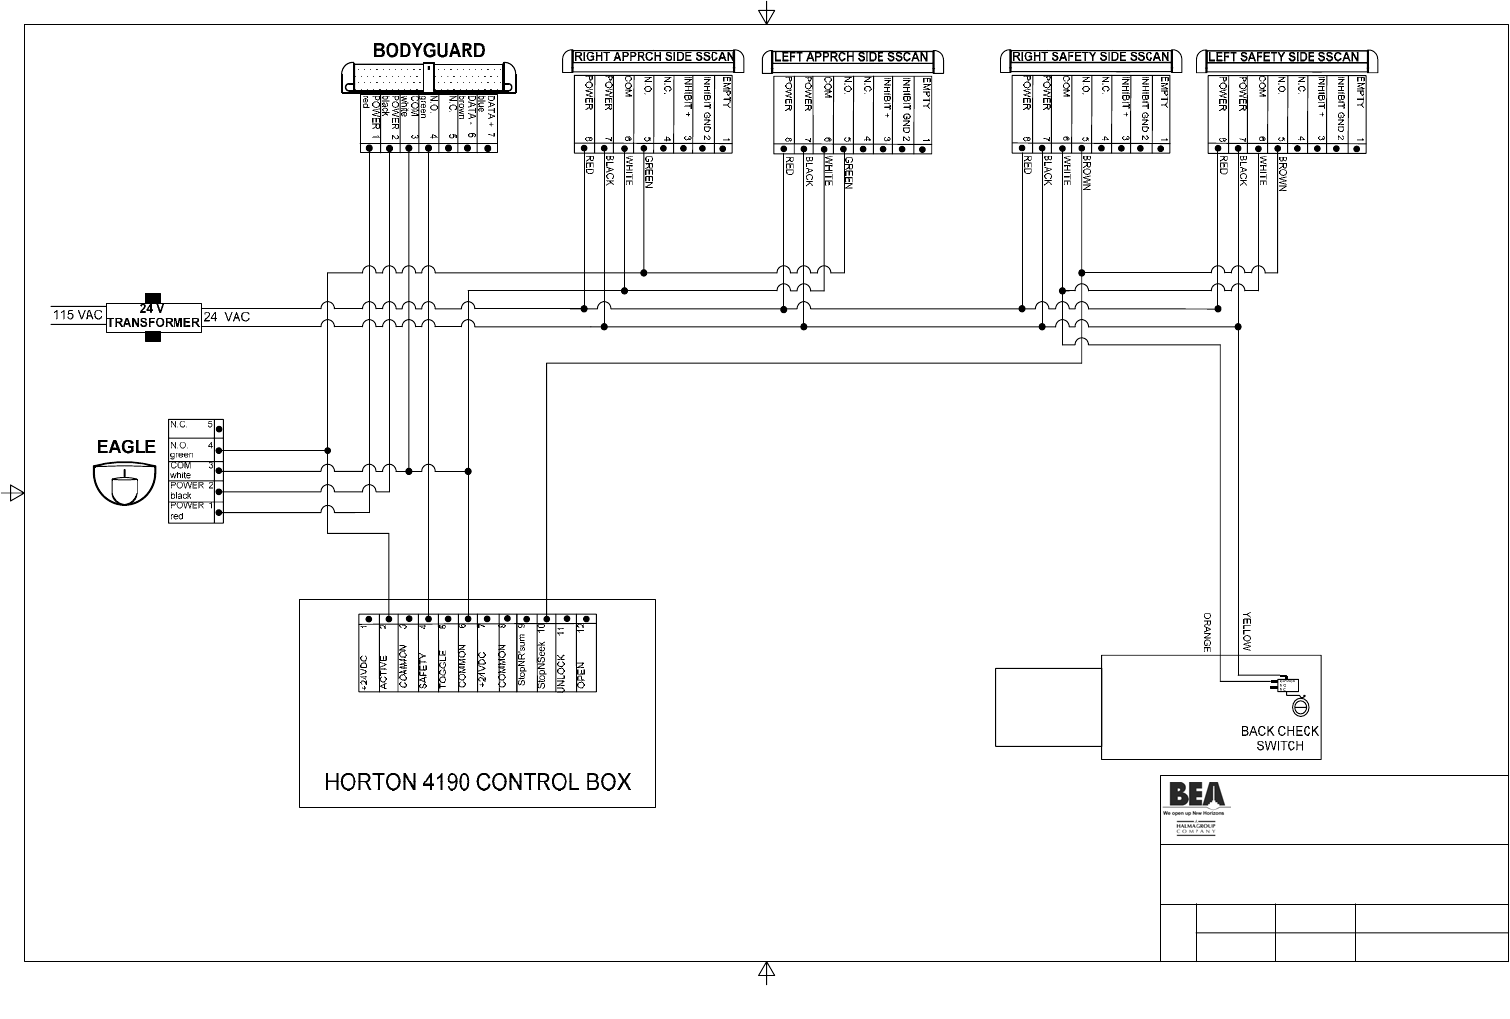 horton 4190 wiring diagram